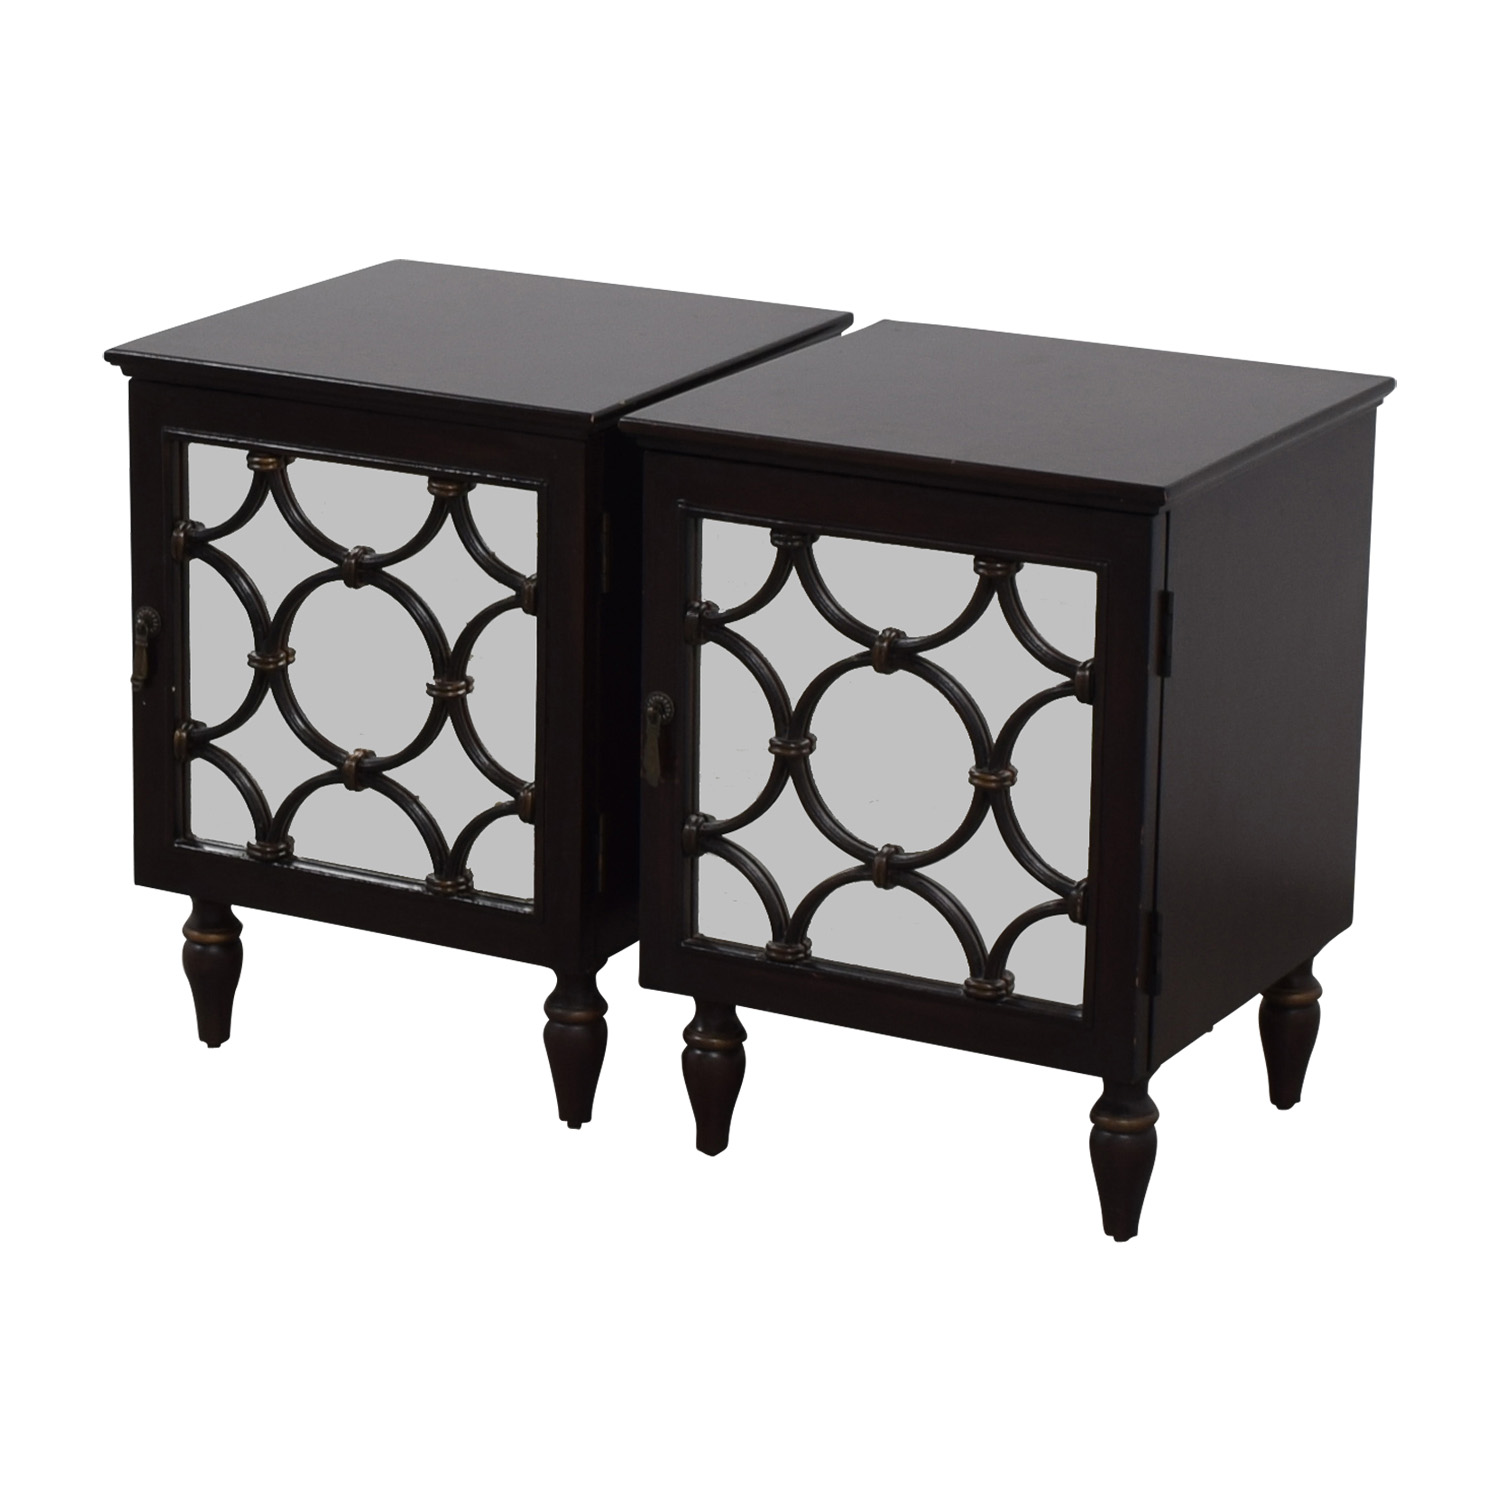 ... Pottery Barn Pottery Barn Mirrored Side Tables On Sale ...